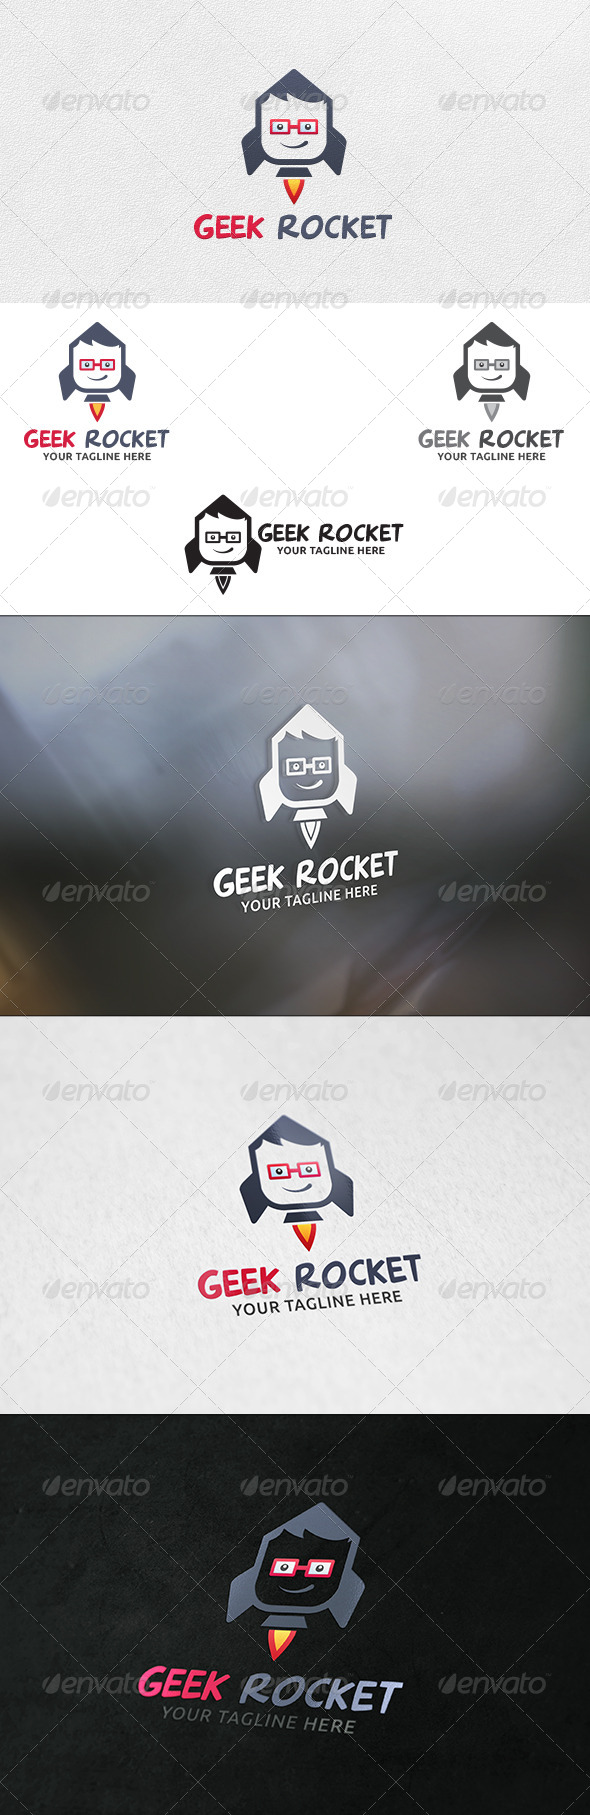 GraphicRiver Geek Rocket Logo Template 6307013